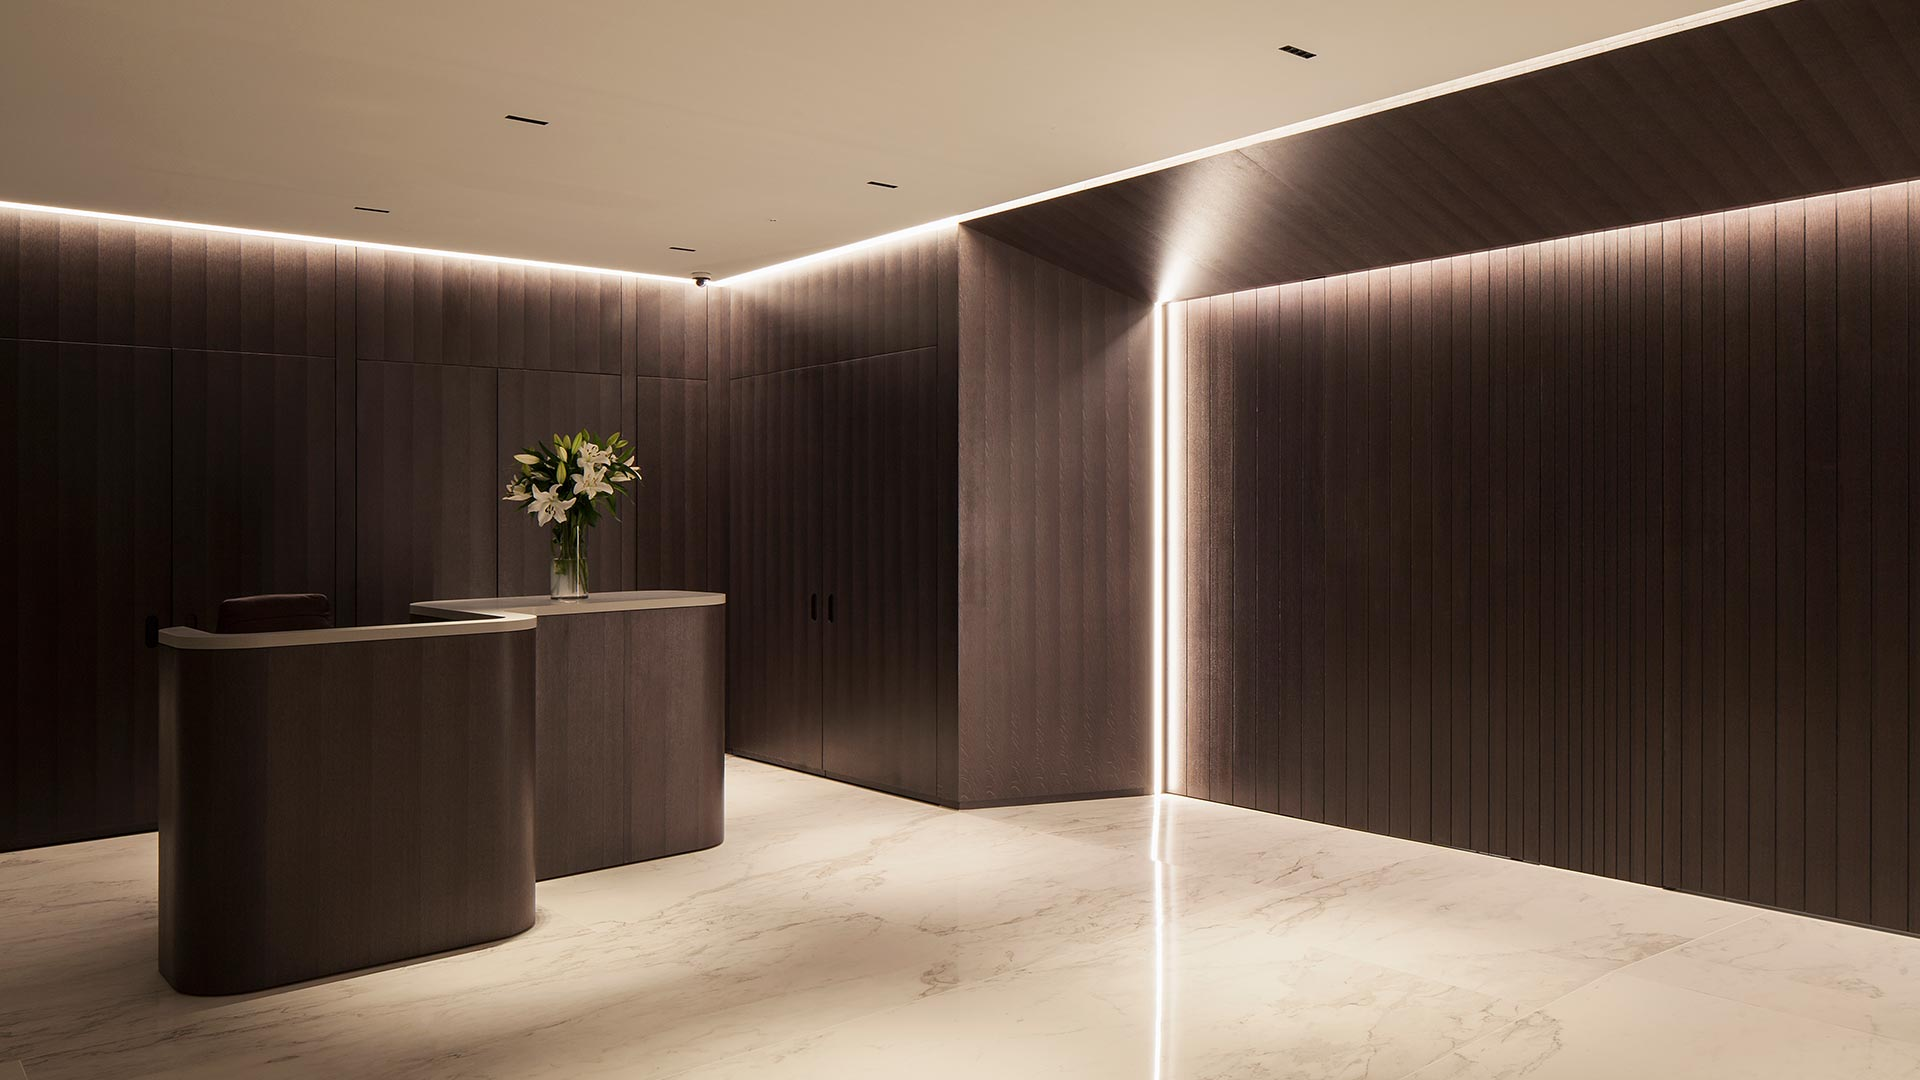 Architectural Lighting Design Office Reception Space Desk Monolithic Sliding Door Framed Illumination Nulty